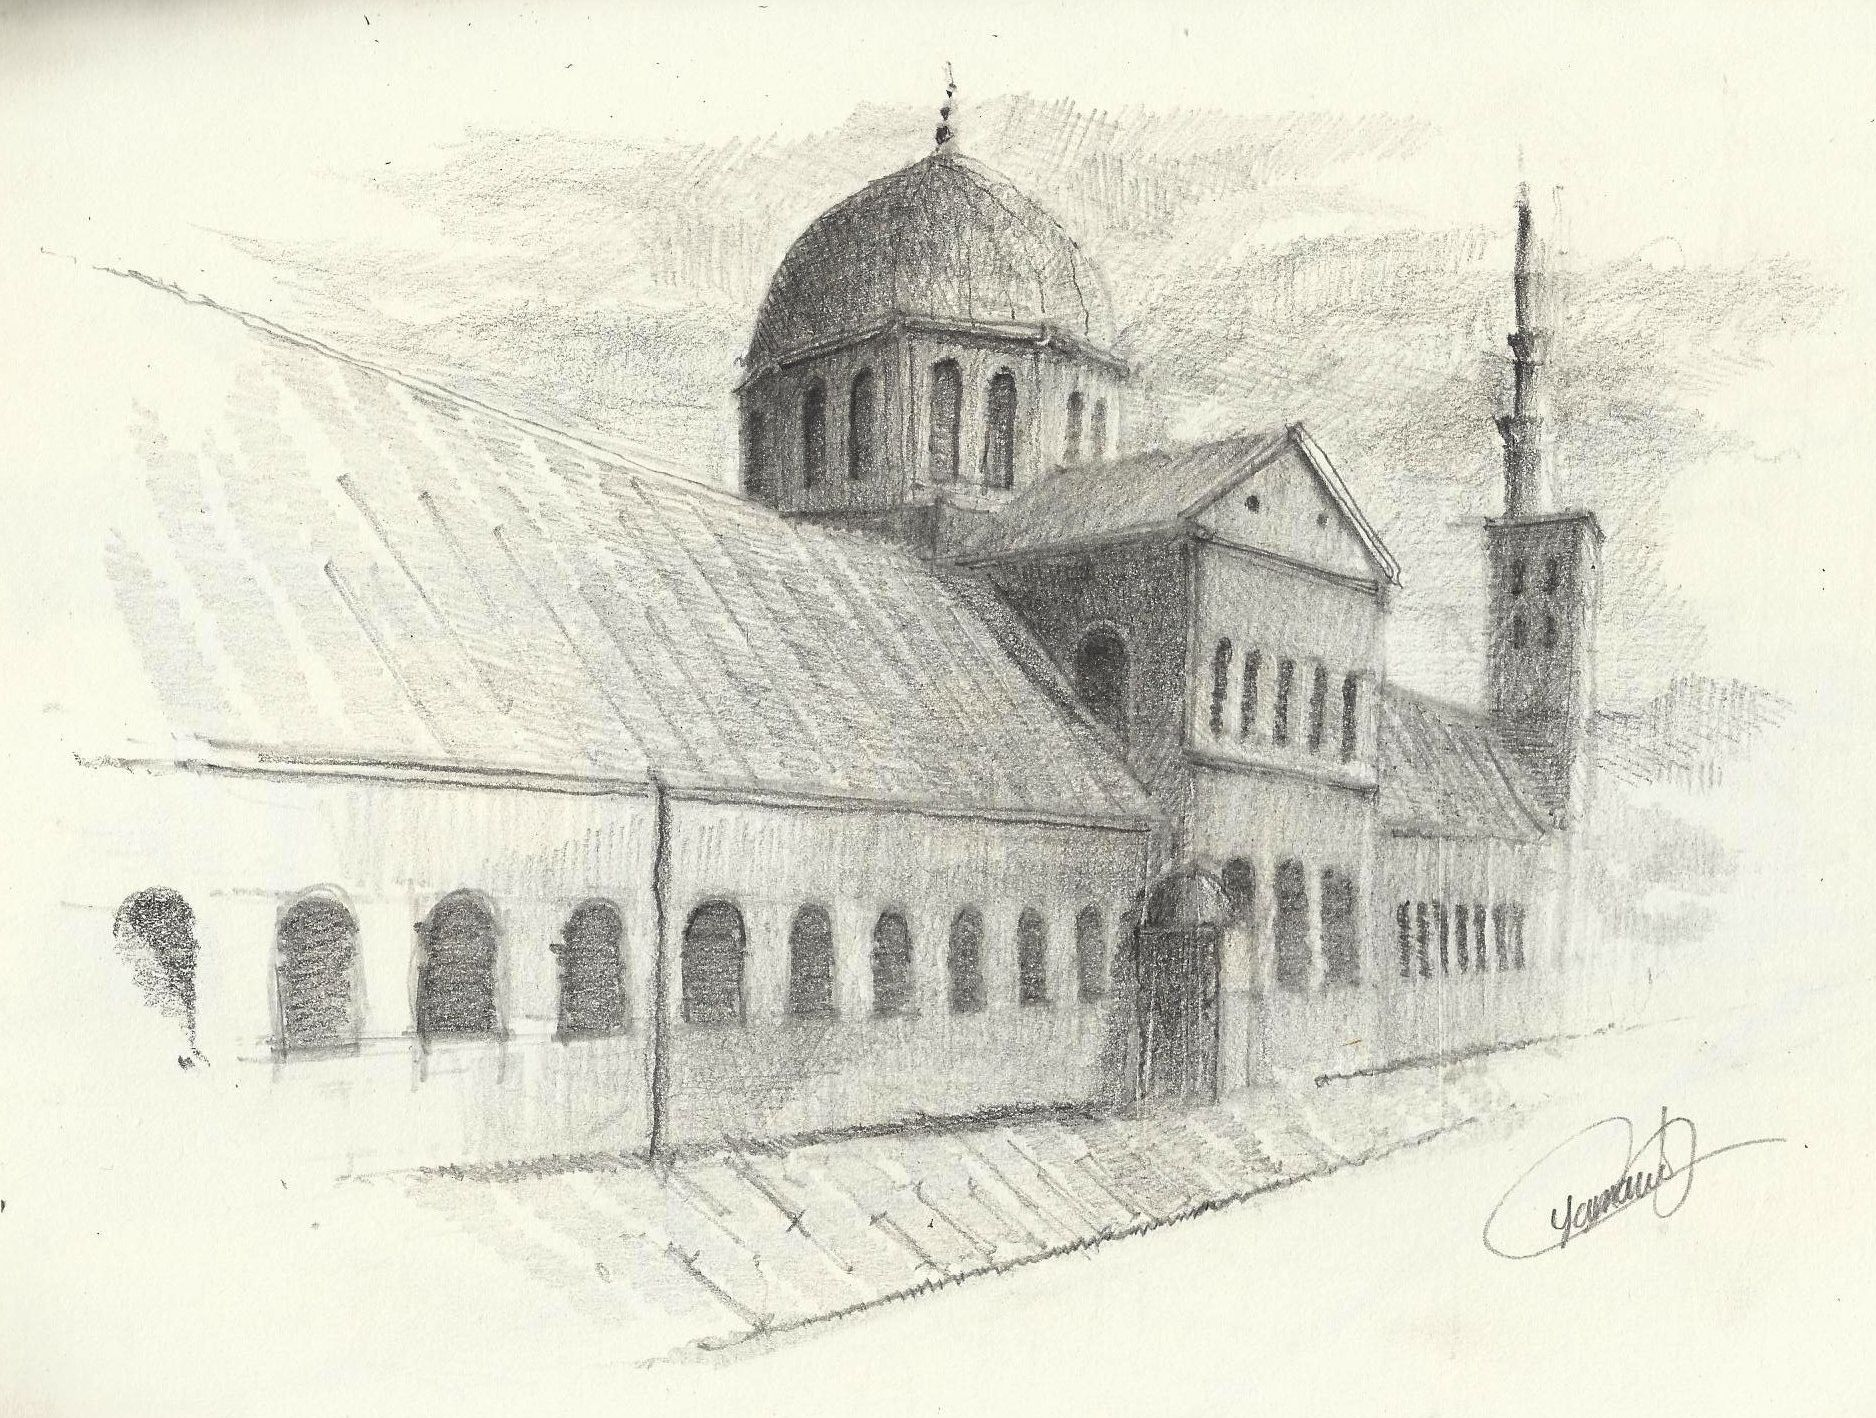 The umayyad mosque damascus syria pencil drawing using h hb